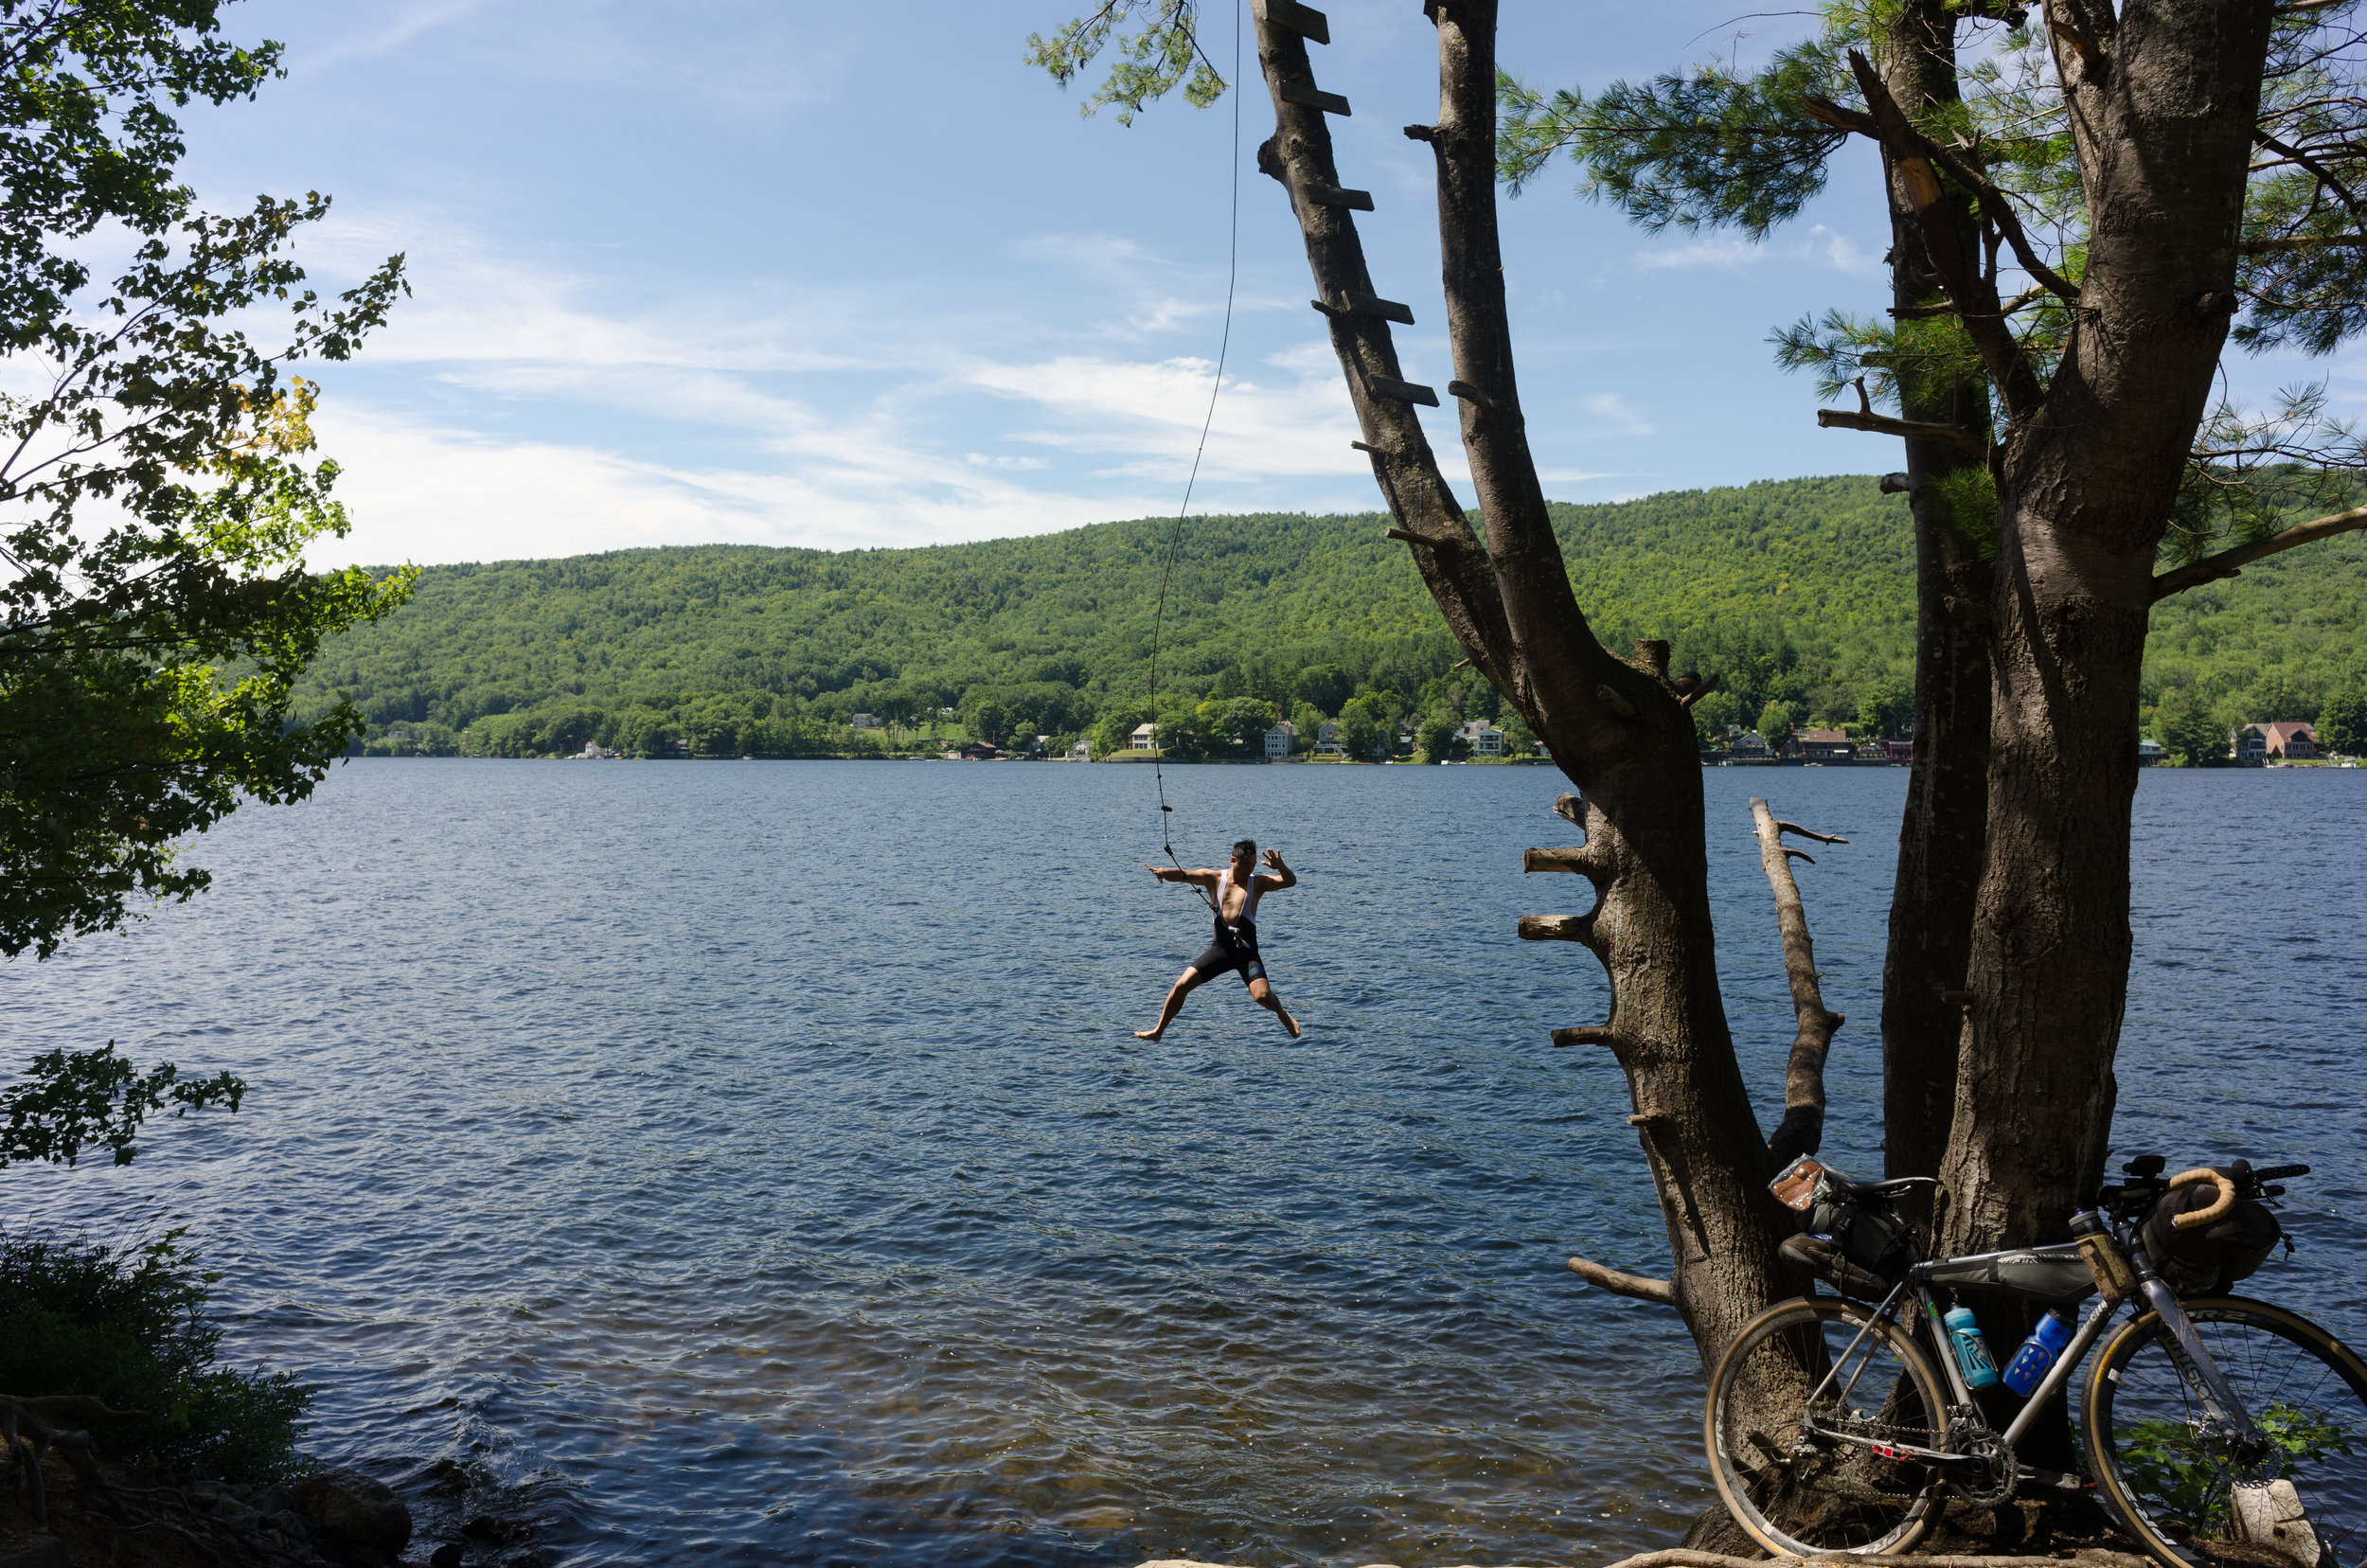 Of course when you discover a random rope swing alongside your route, you just have to go for it.